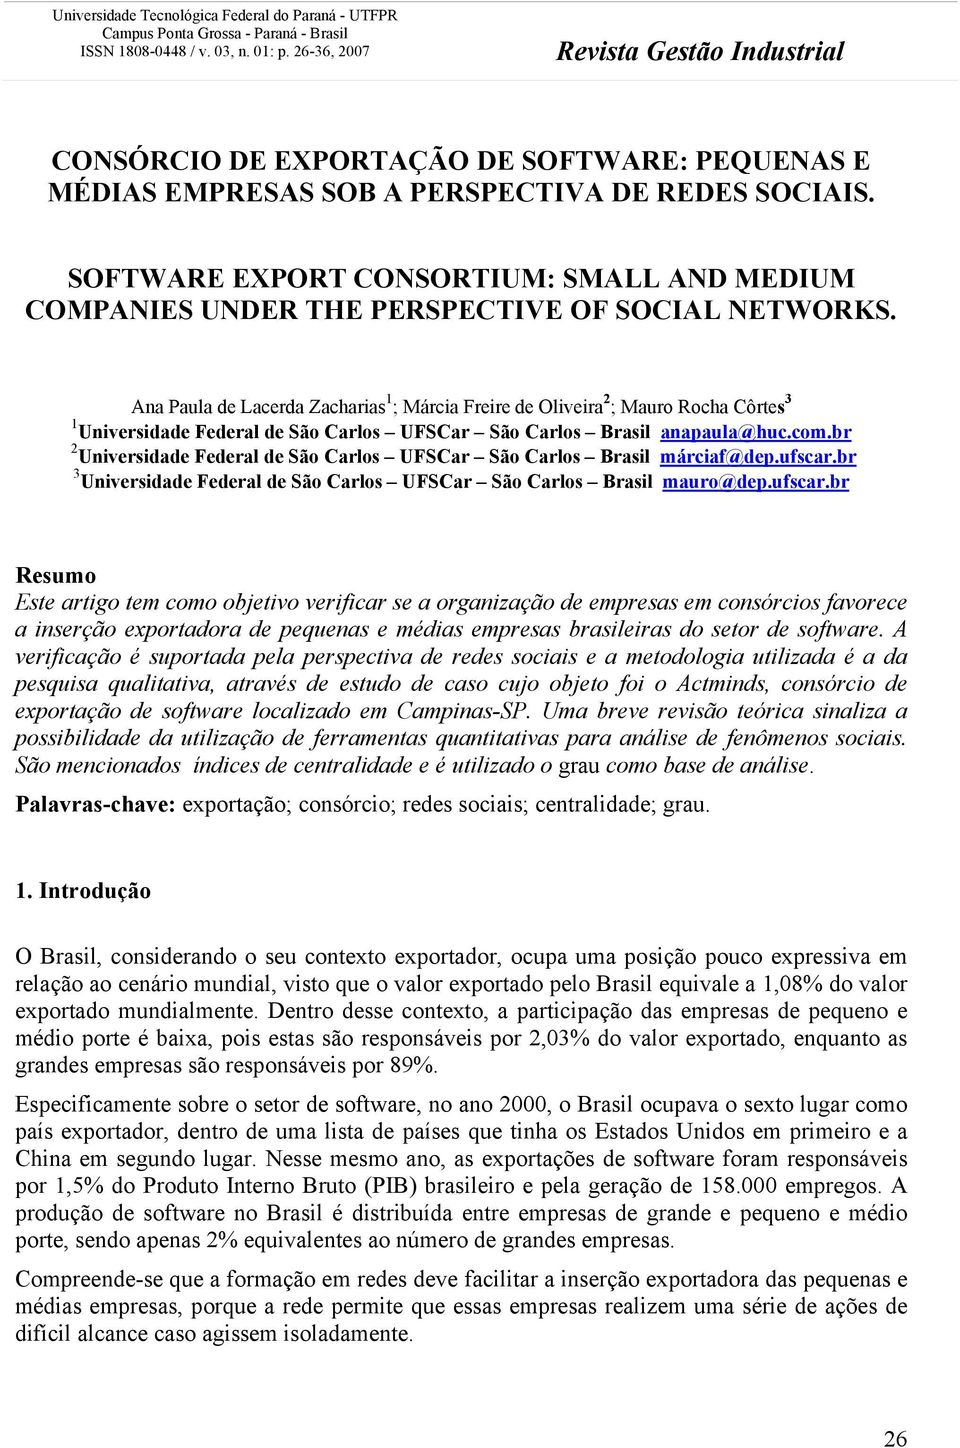 SOFTWARE EXPORT CONSORTIUM: SMALL AND MEDIUM COMPANIES UNDER THE PERSPECTIVE OF SOCIAL NETWORKS.